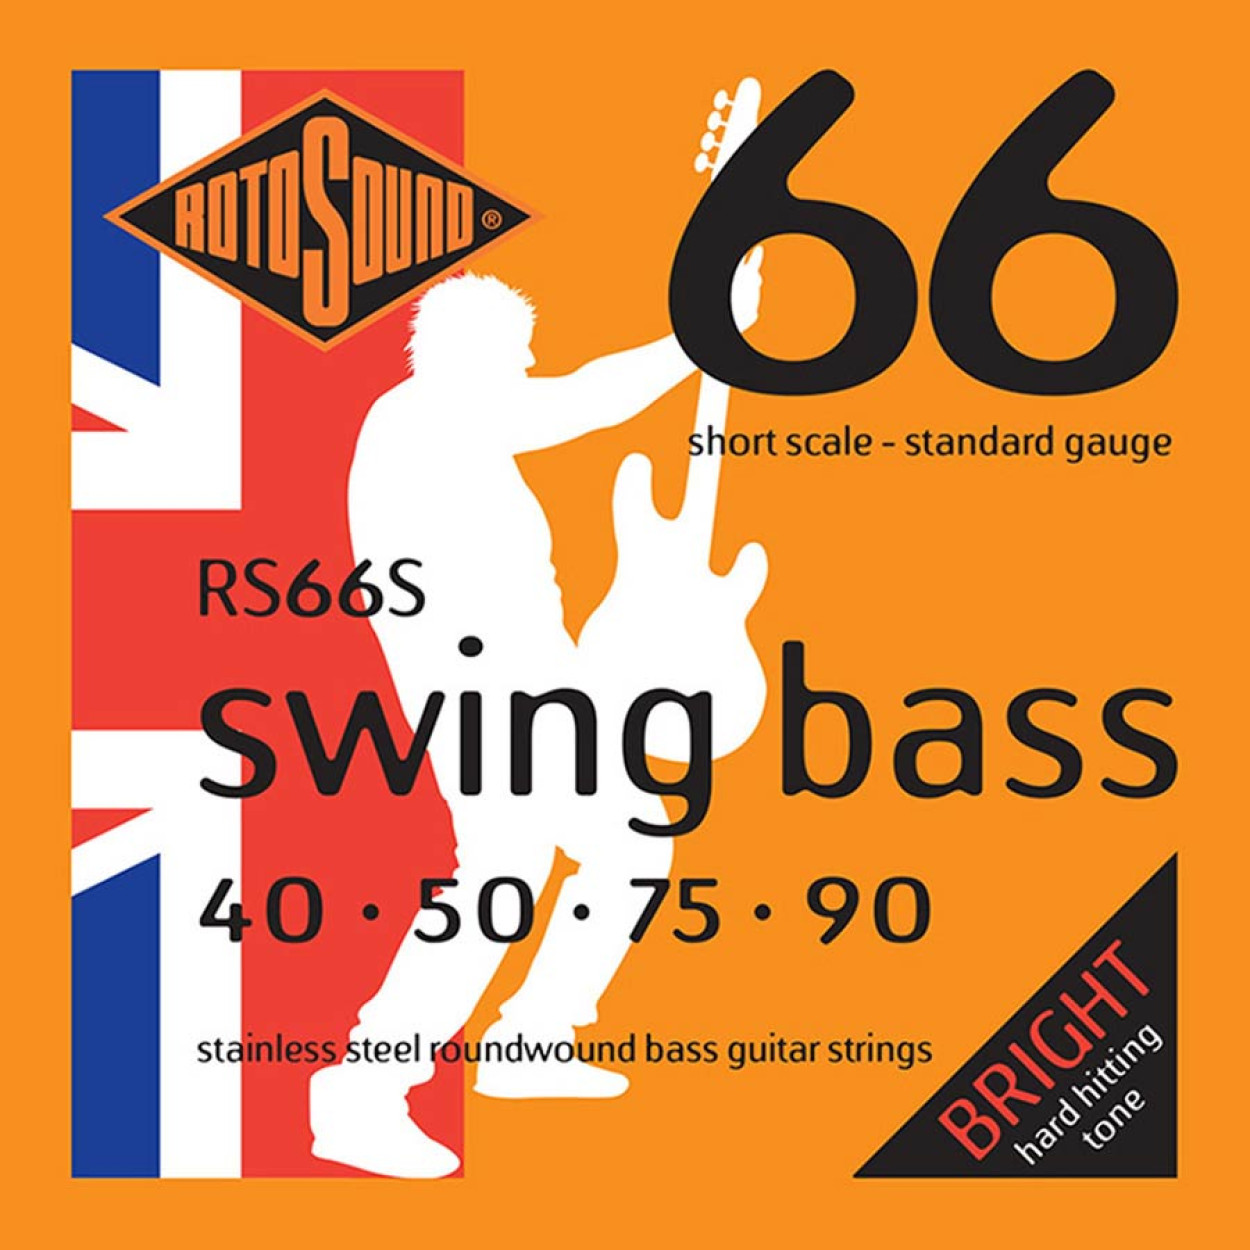 rotosound swing bass RS66S Short Scale available at Penarth Music Centre